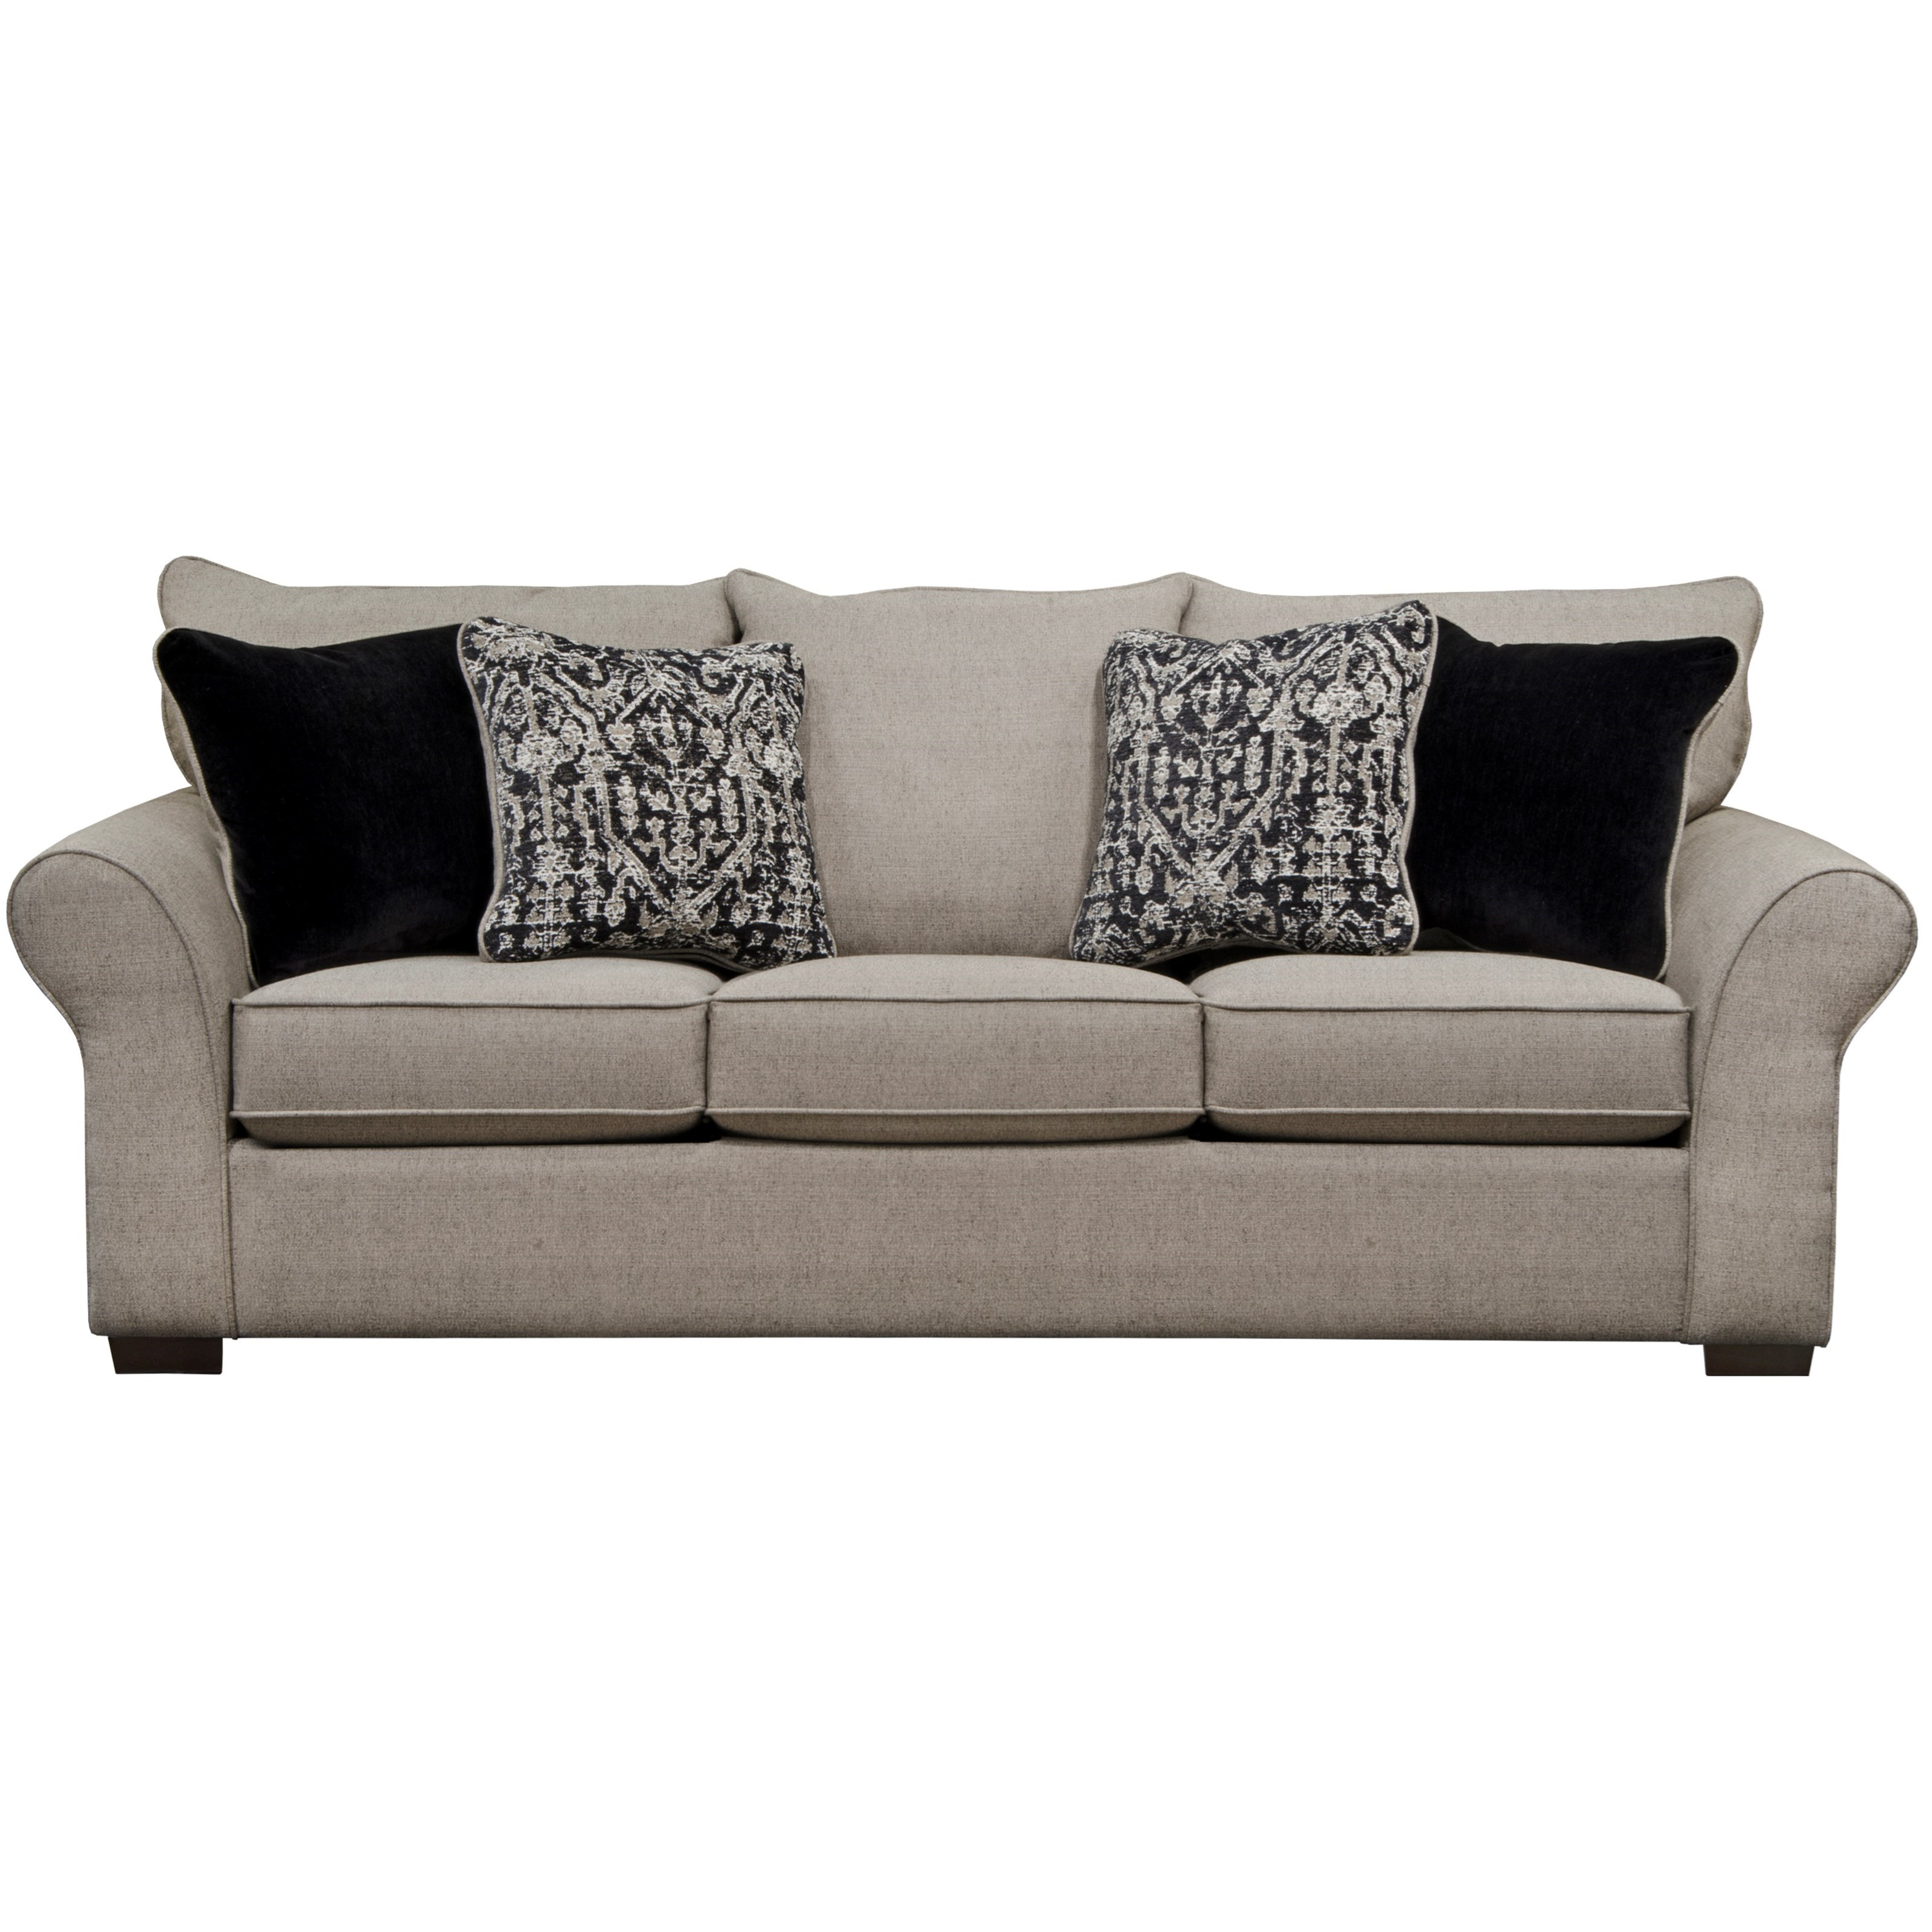 Maddox Sofa by Jackson Furniture at Northeast Factory Direct